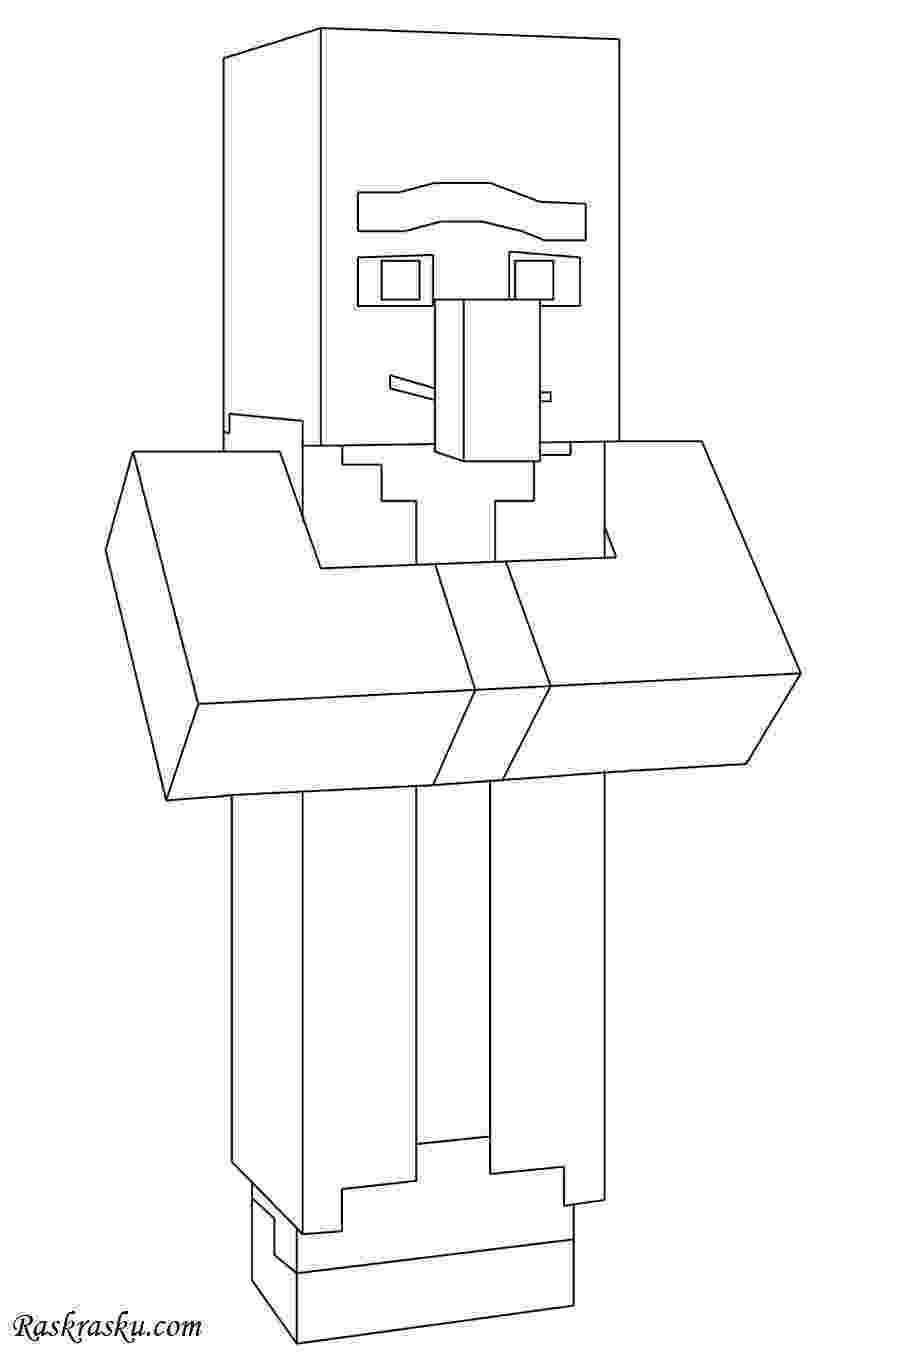 minecraft tnt picture tnt coloring pages at getdrawings free download picture tnt minecraft